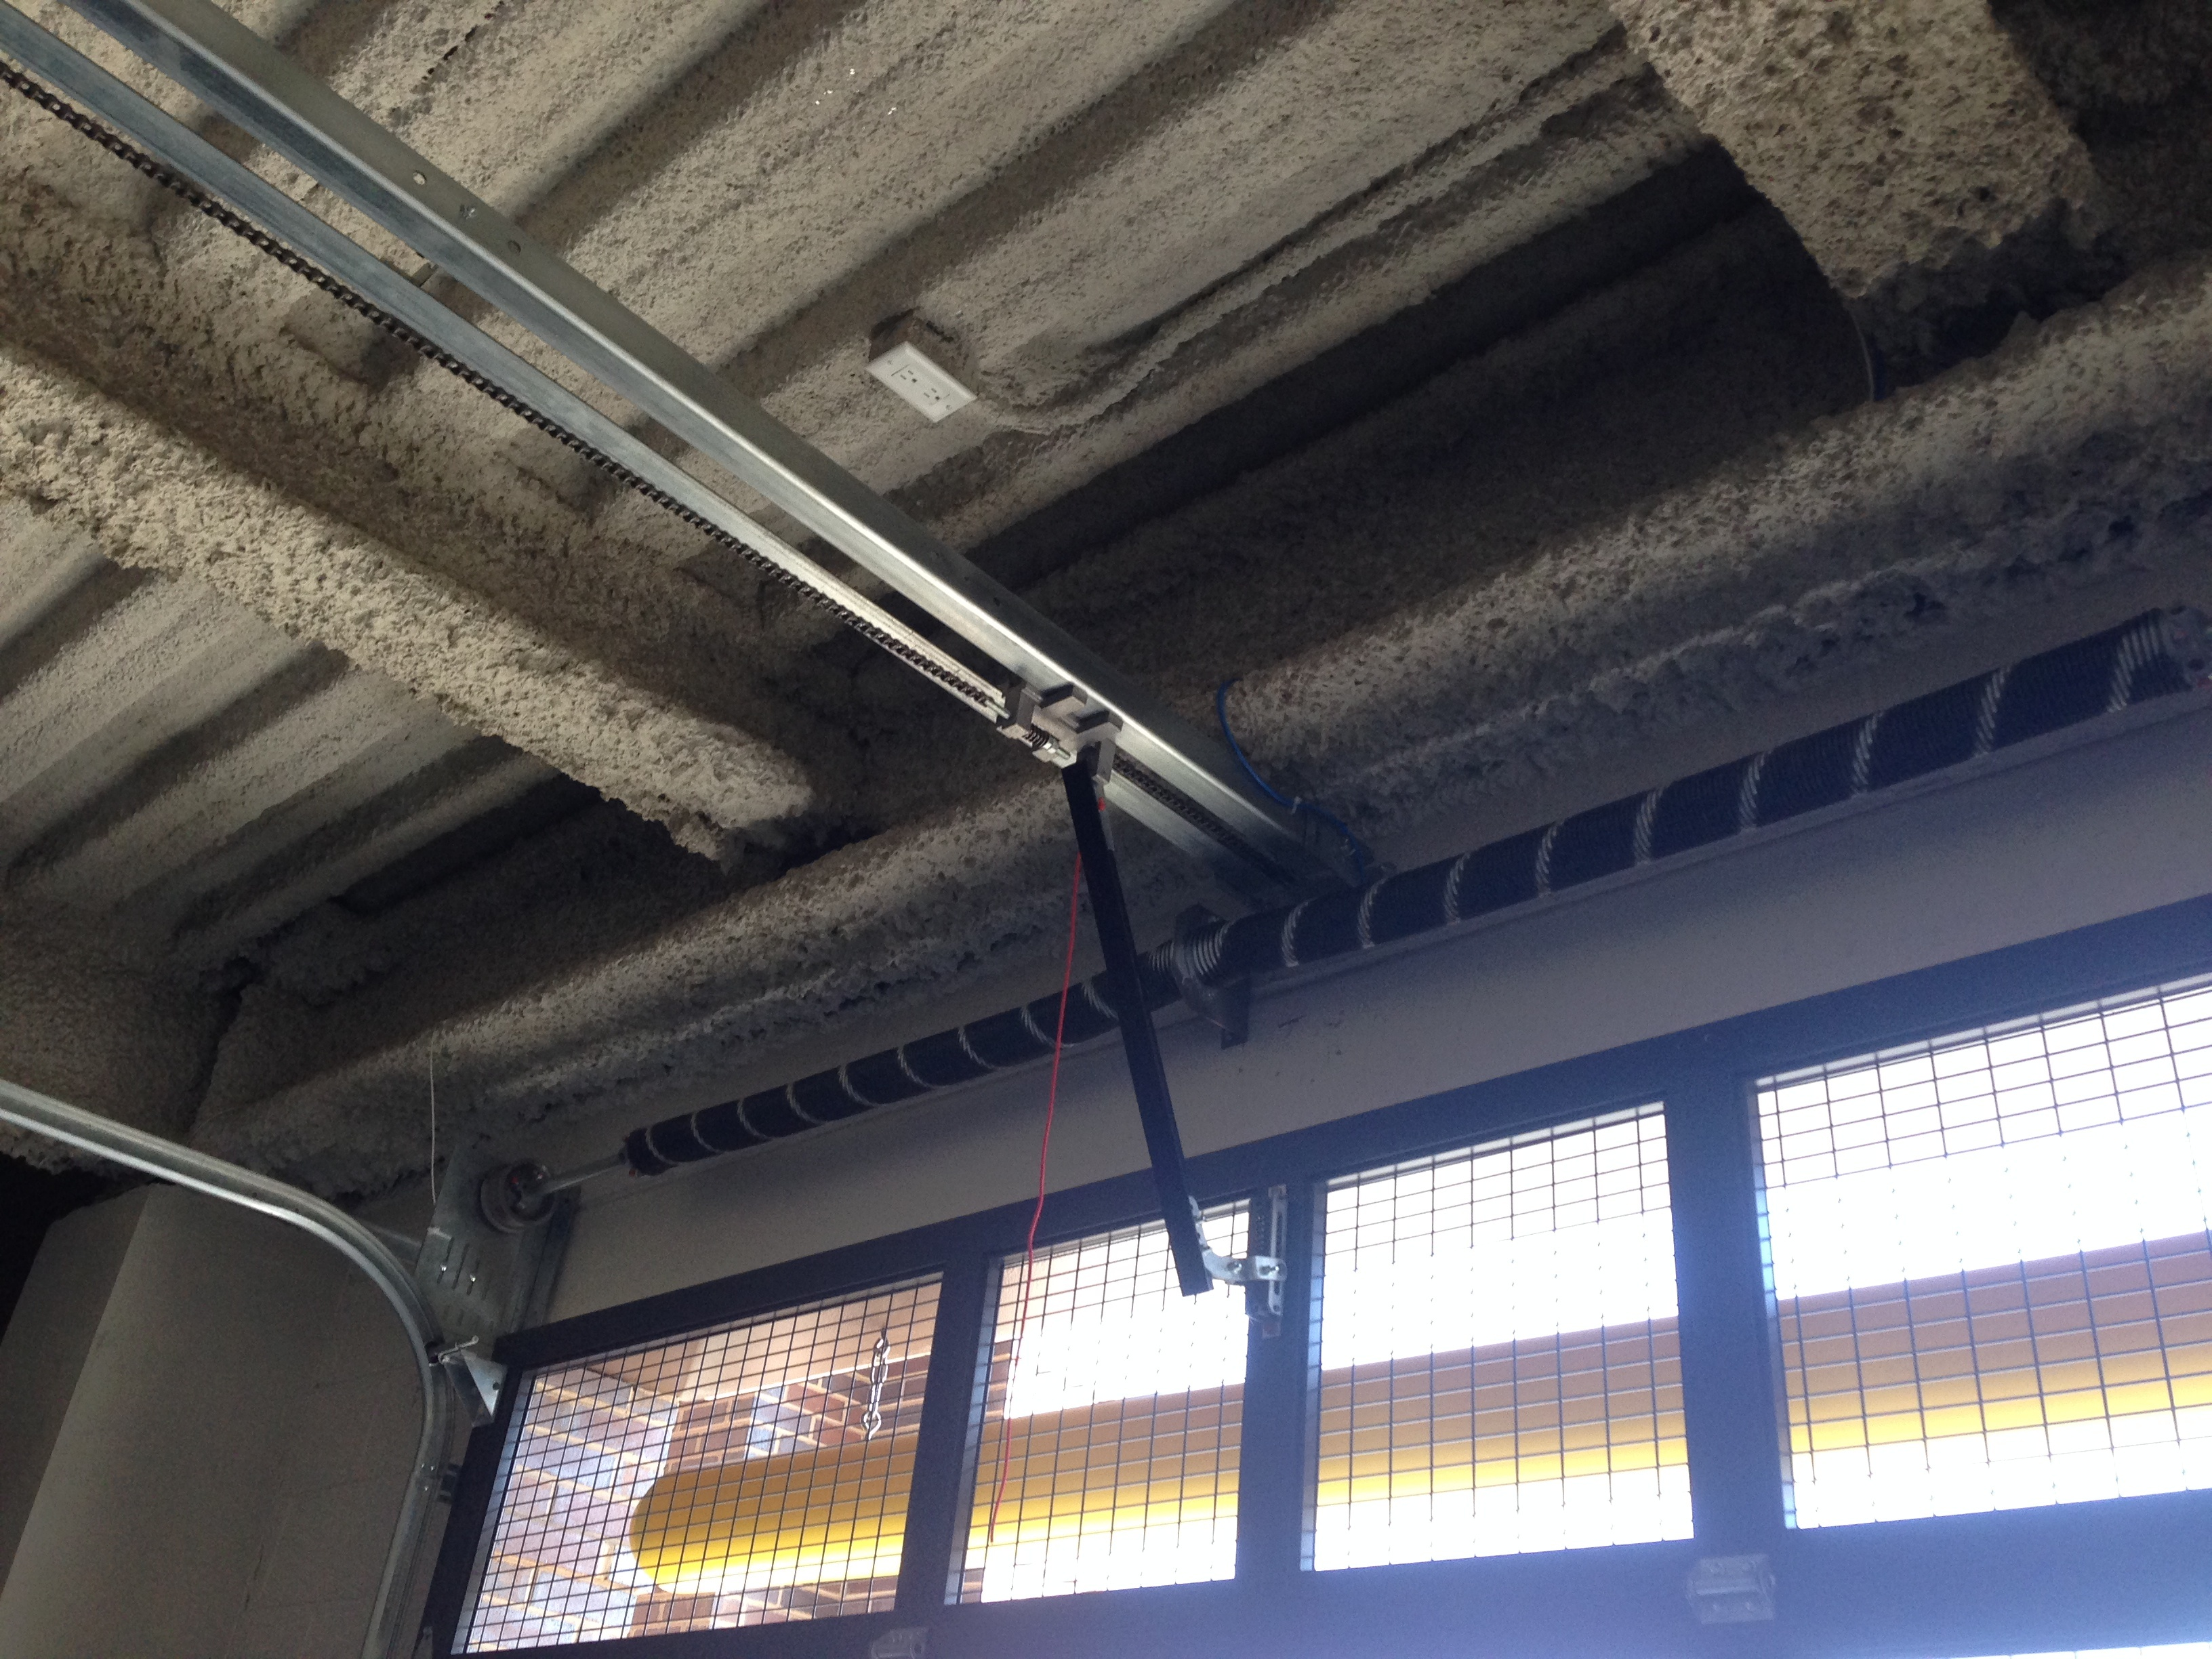 wire-mesh-perforated-overhead-garage-rollup-sectional-track-aluminum-door.jpg